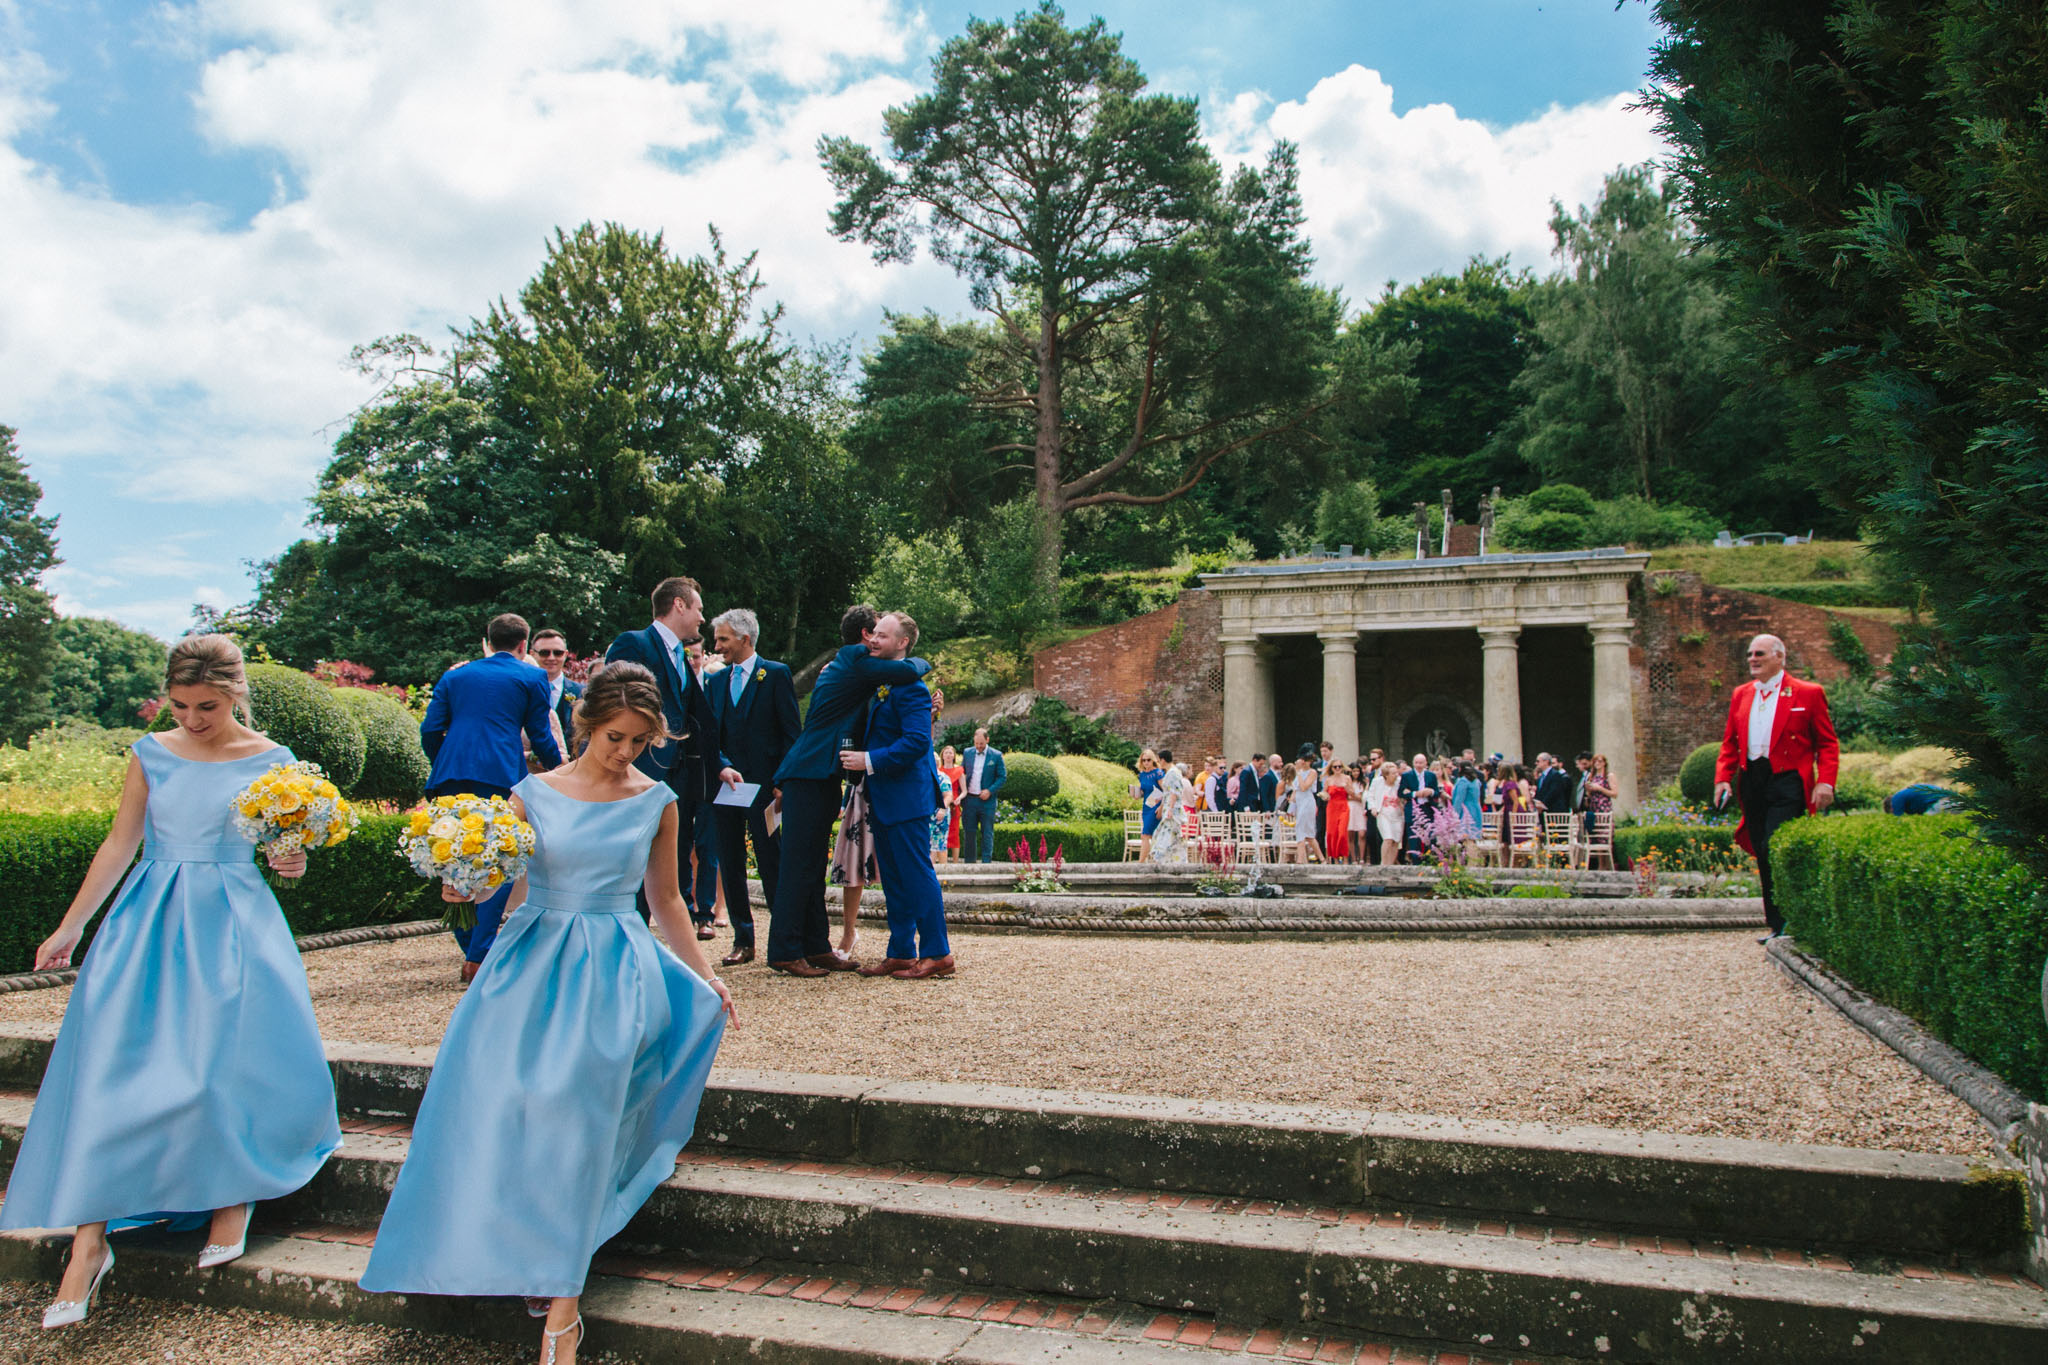 Wotton house wedding photography, hayley rose photography-27.jpg